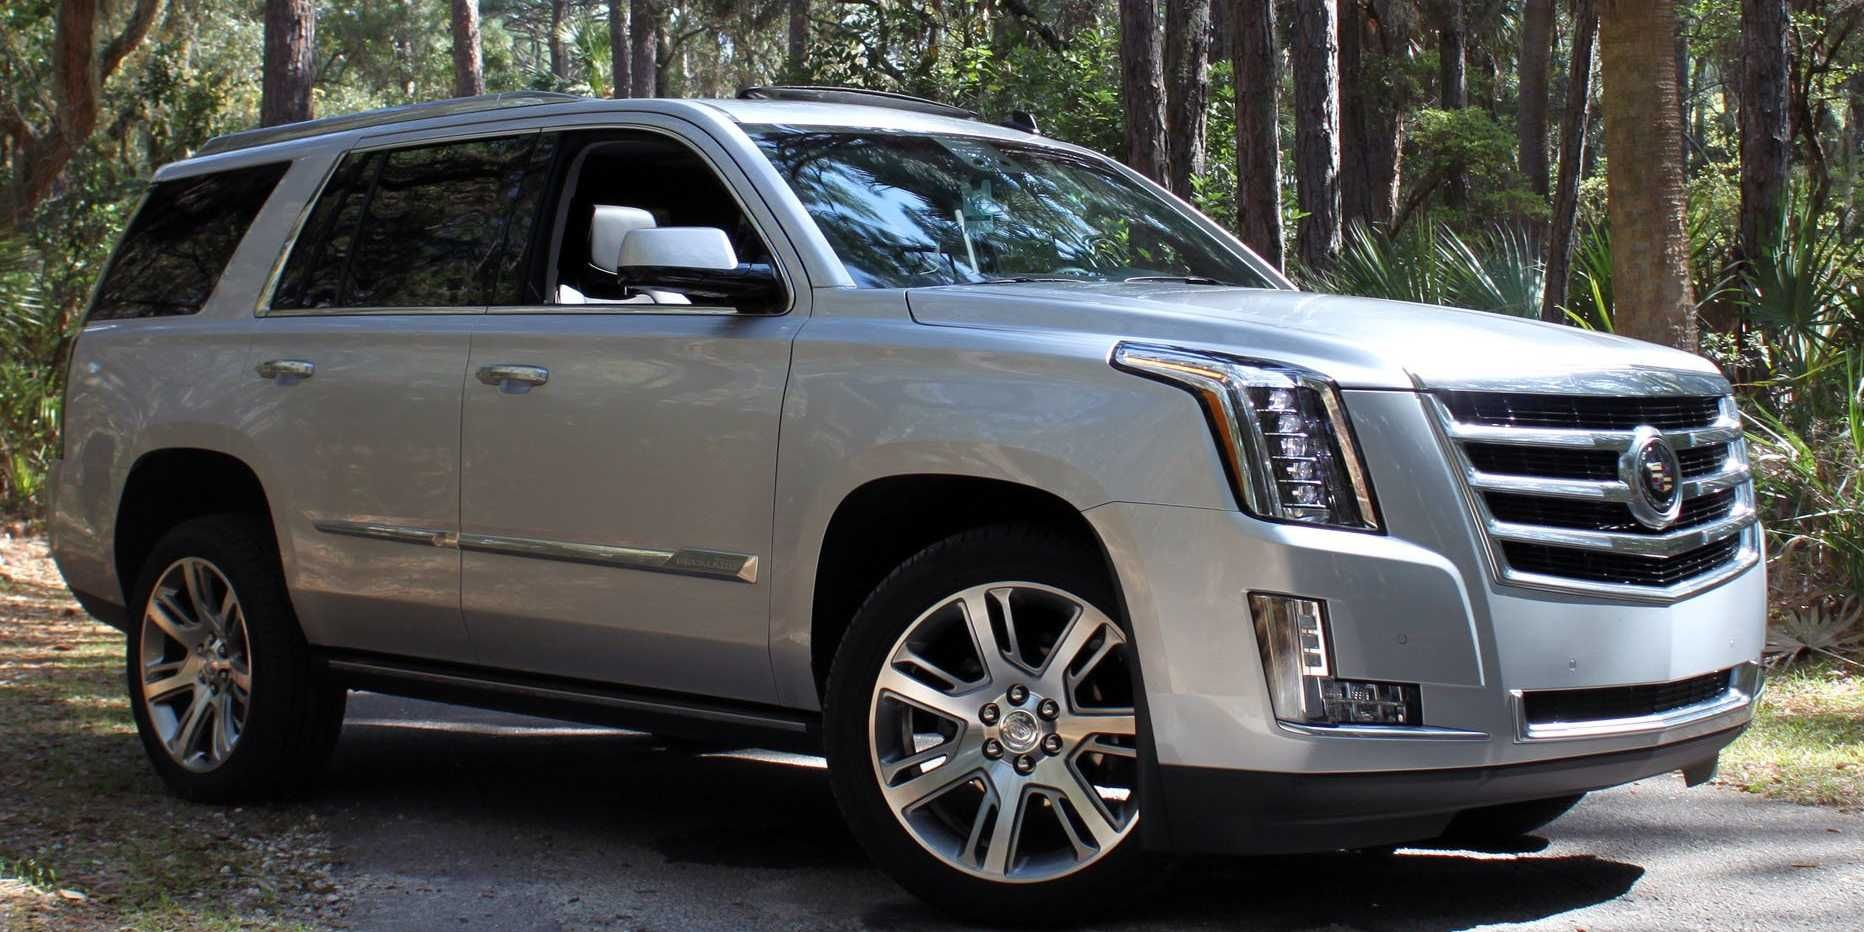 2017 cadillac escalade rumors in redesign exterior interior. Black Bedroom Furniture Sets. Home Design Ideas